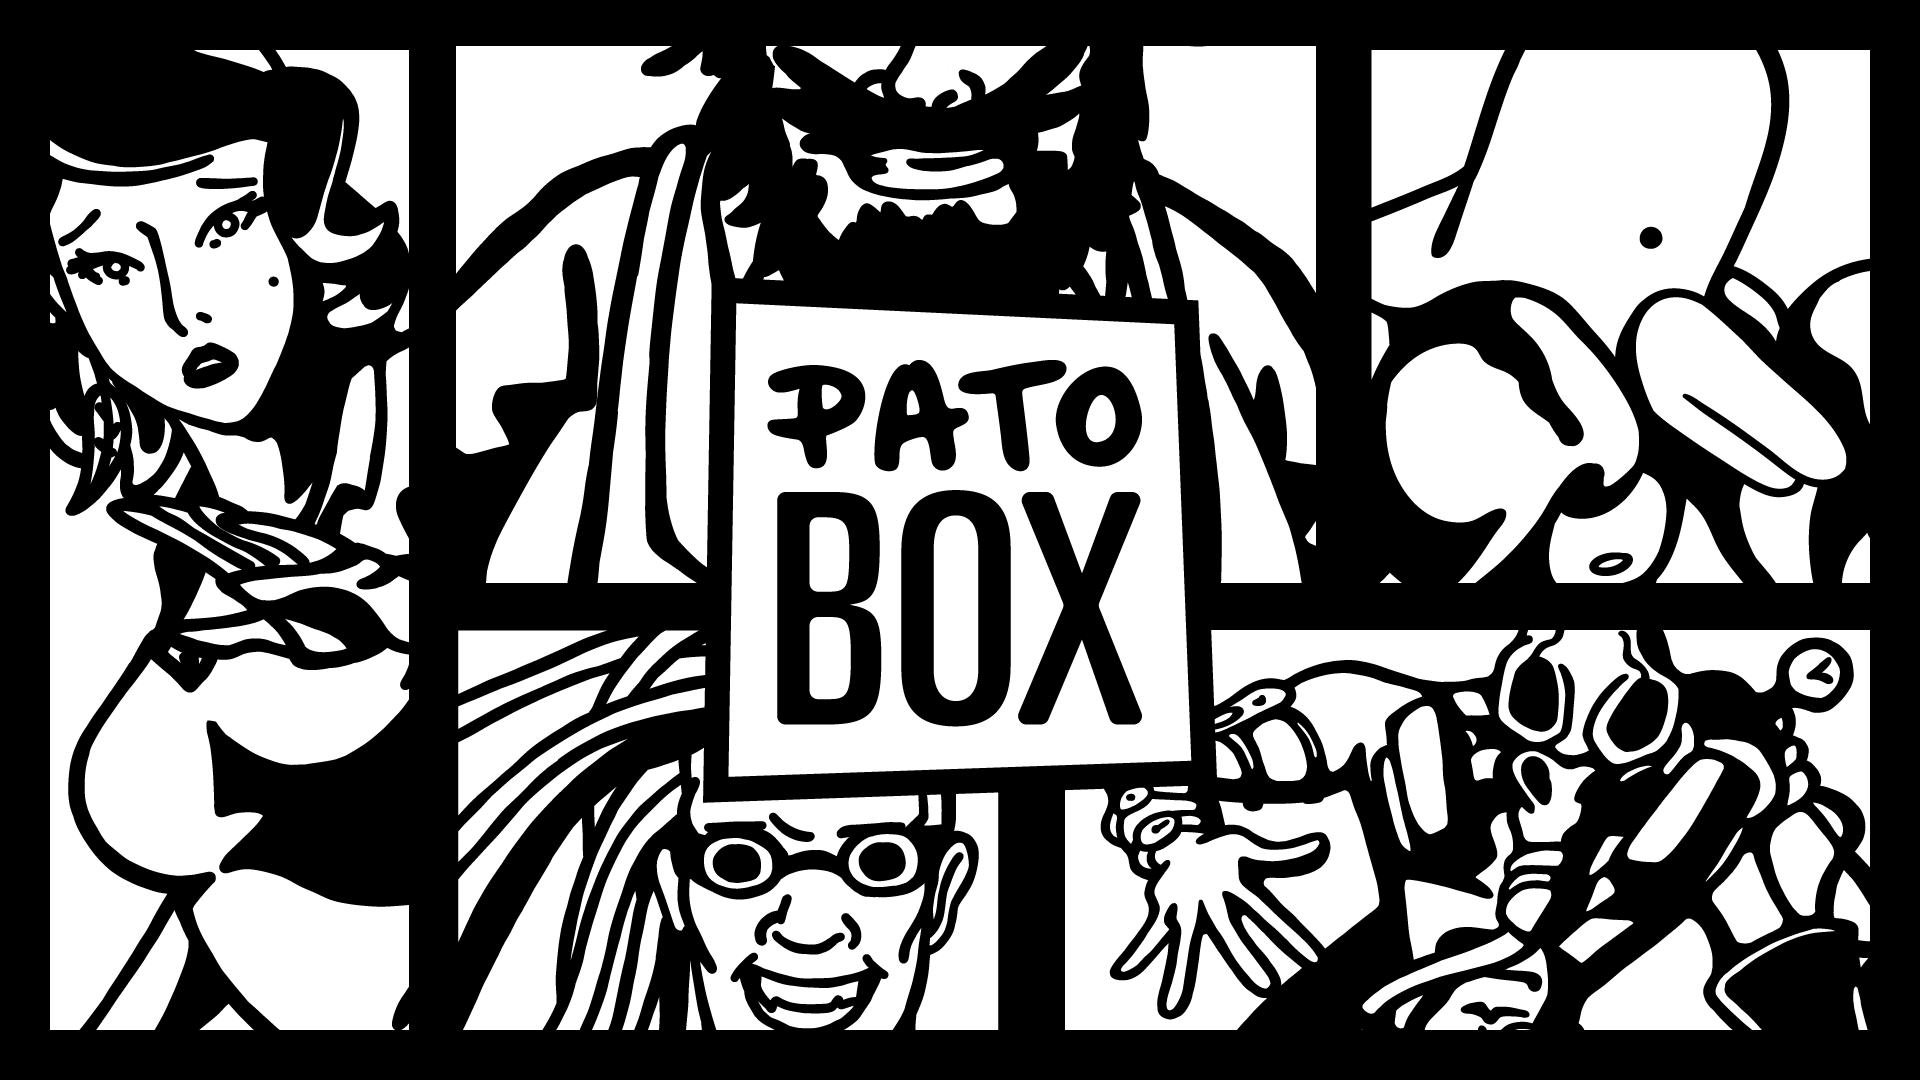 pato box switch review